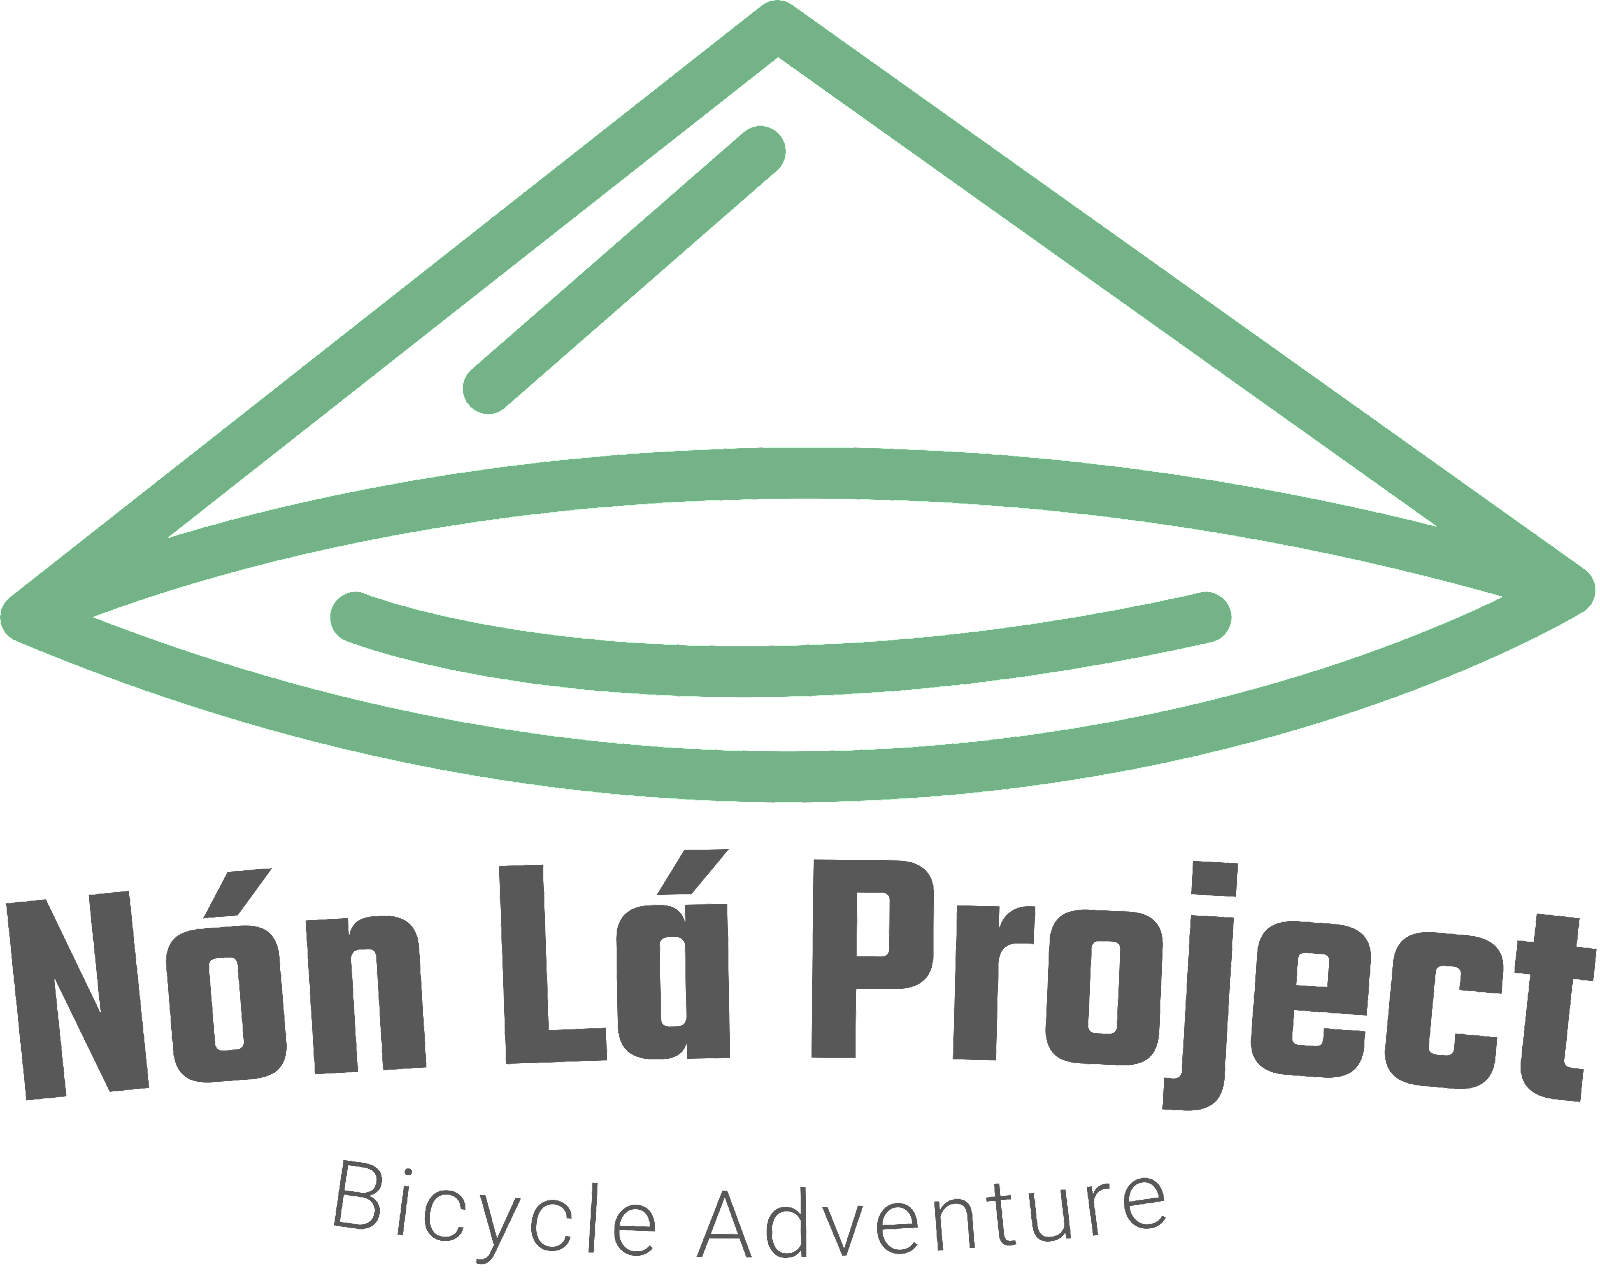 Non La Project Logo - Original on Transparent.png